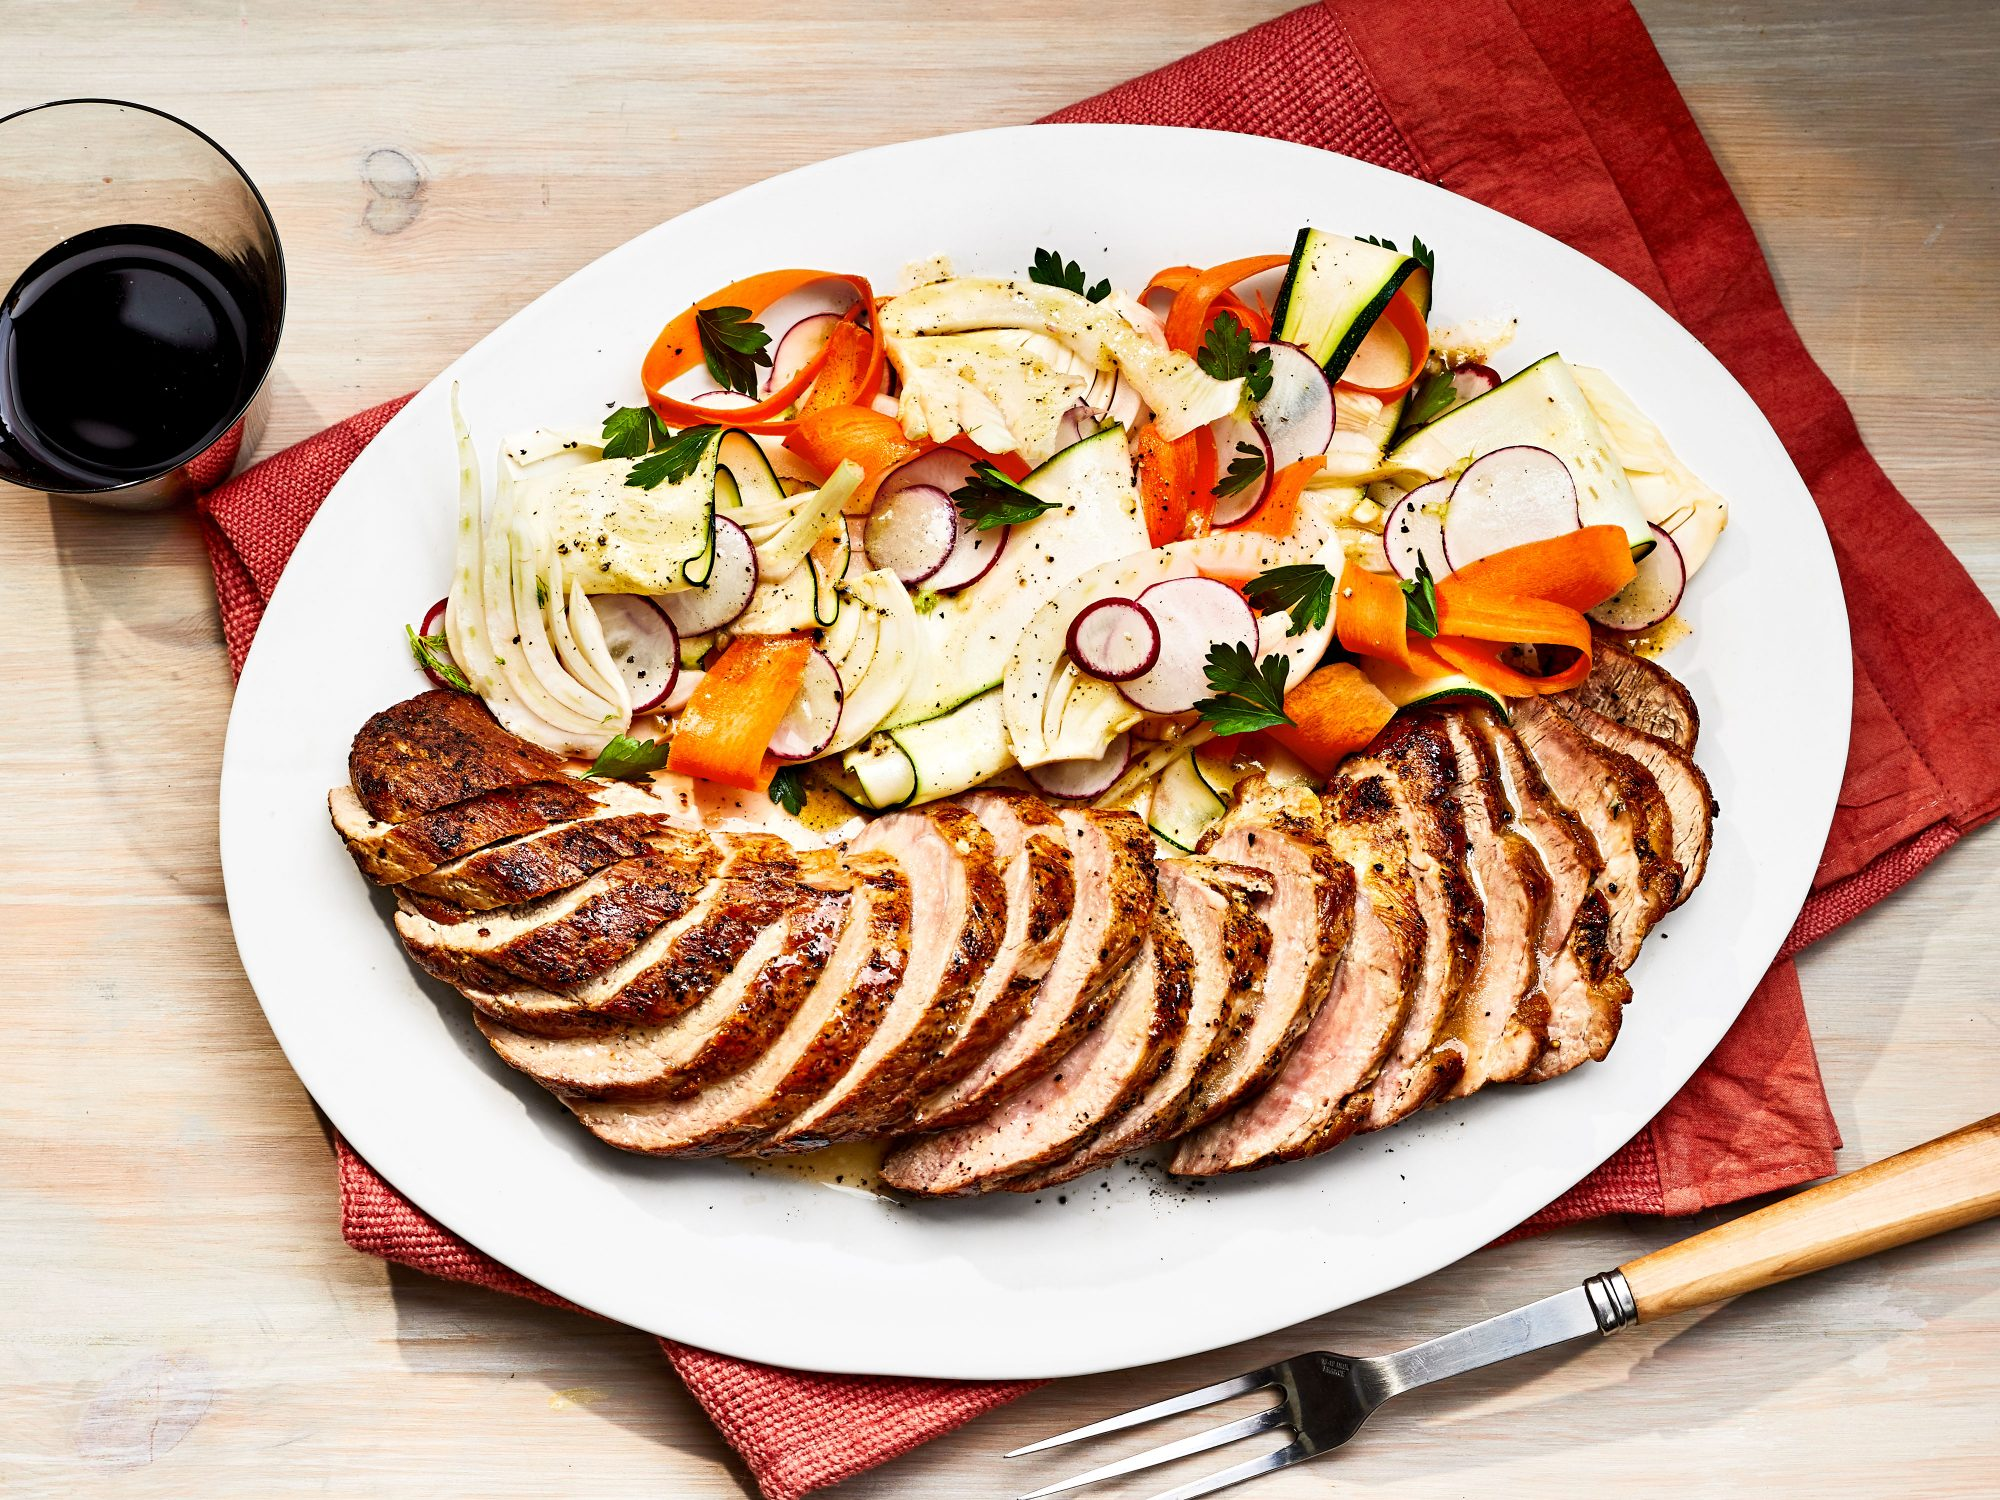 Baked Pork Tenderloin with Shaved Vegetable Salad